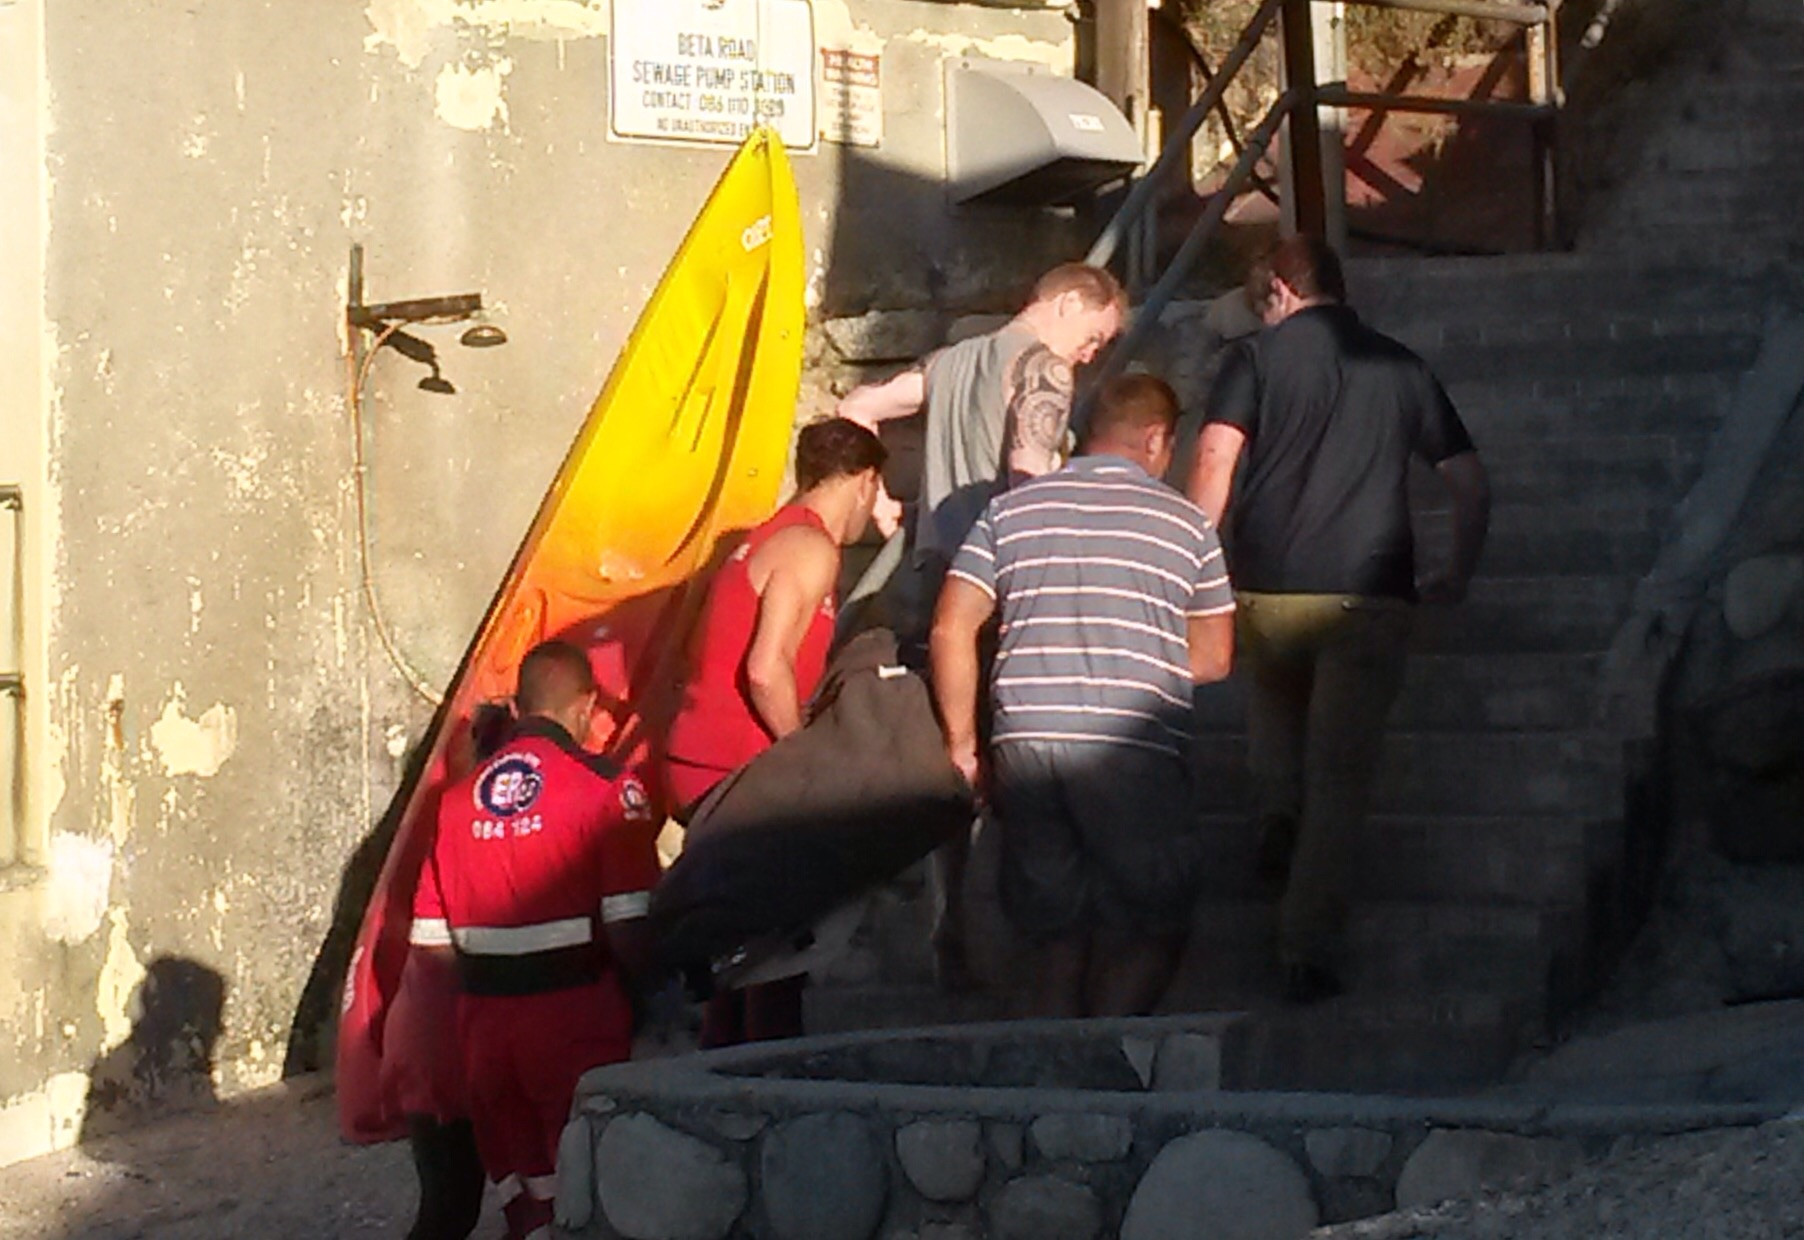 Shane Keenan is carried from the rescue base to an ambulance.